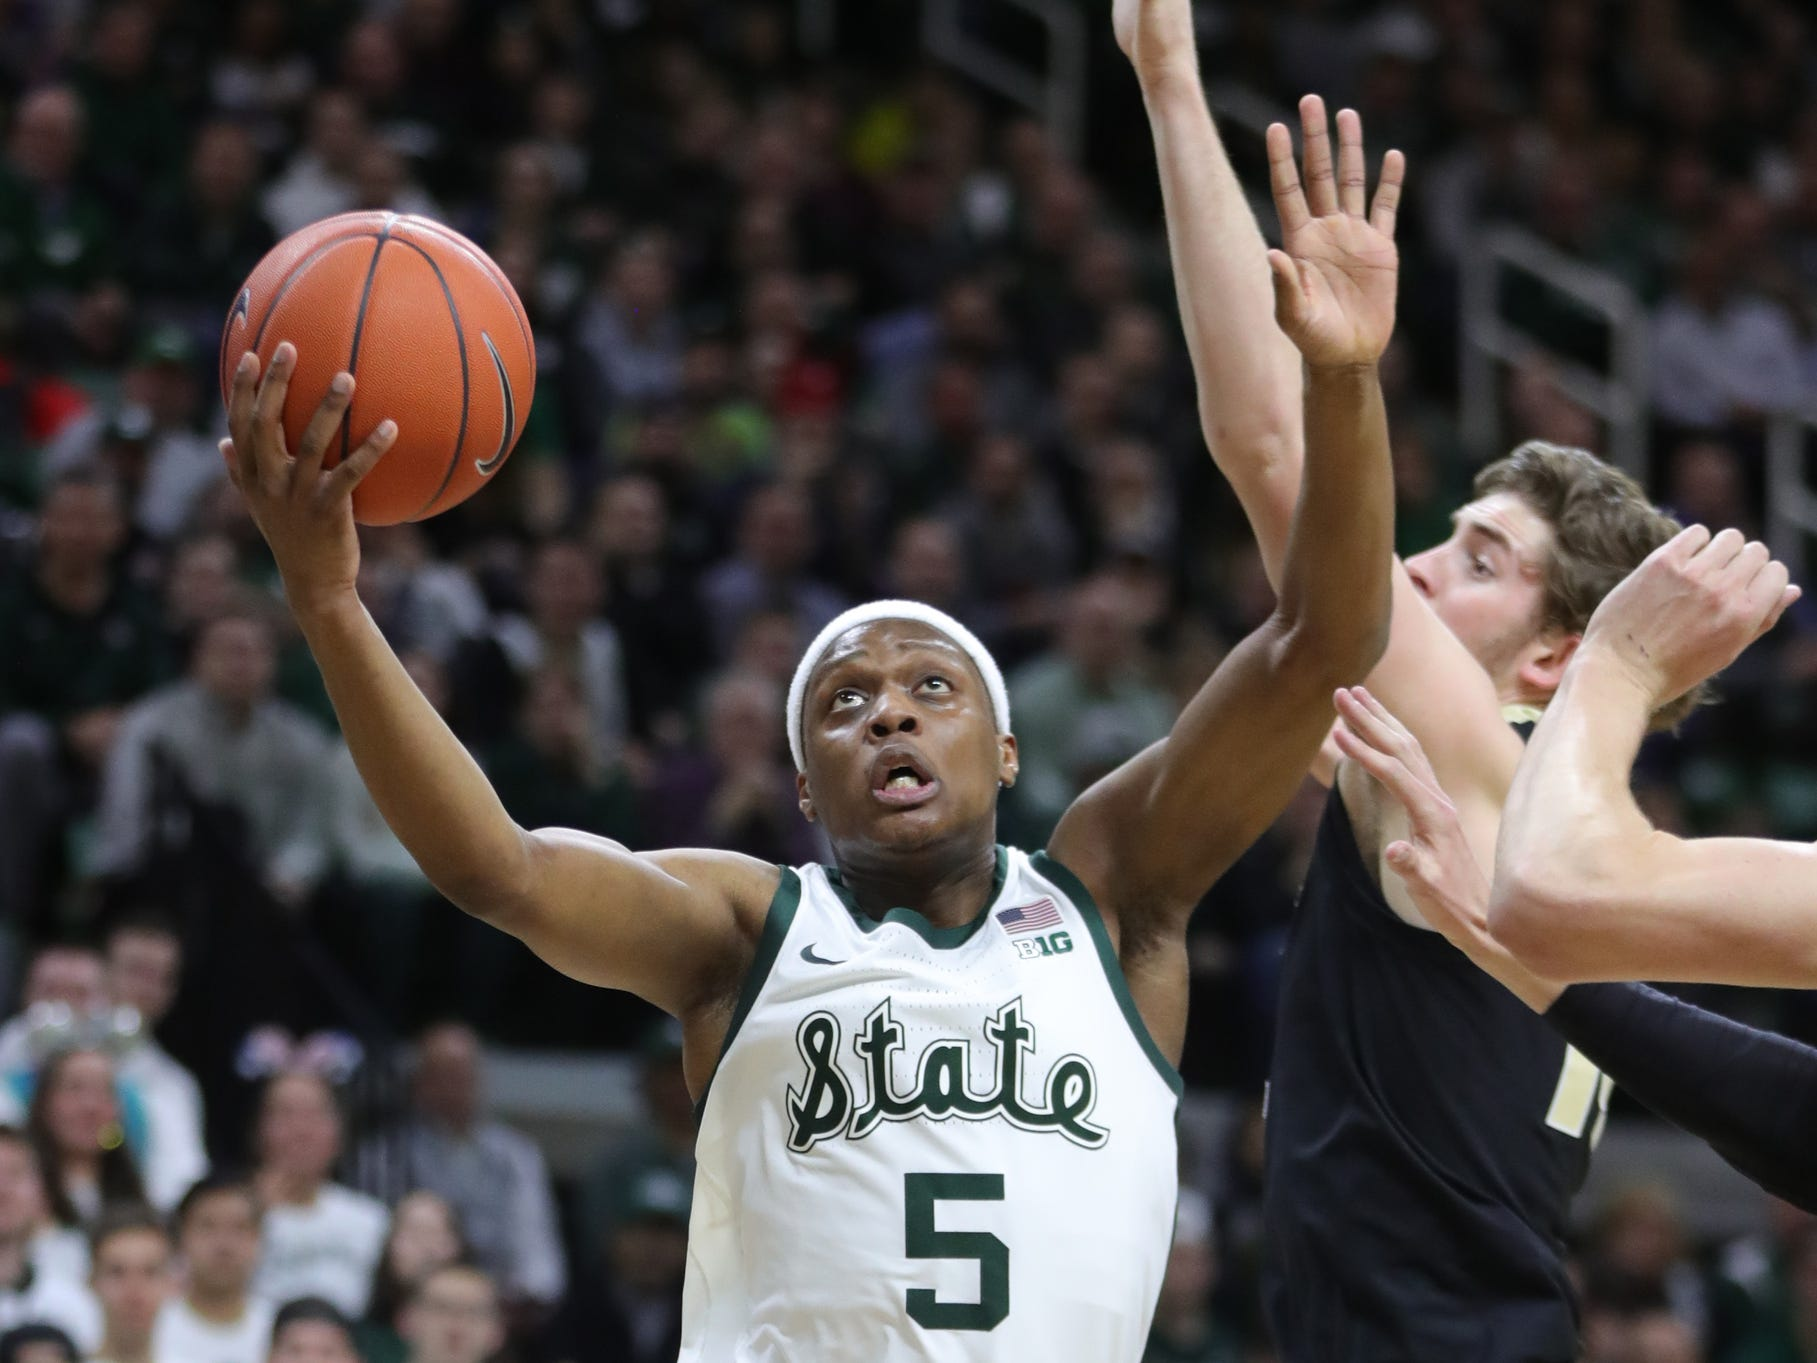 Michigan State guard Cassius Winston scores against Purdue during first half action Tuesday, Jan. 8, 2019 at the Breslin Center in East Lansing, Mich.